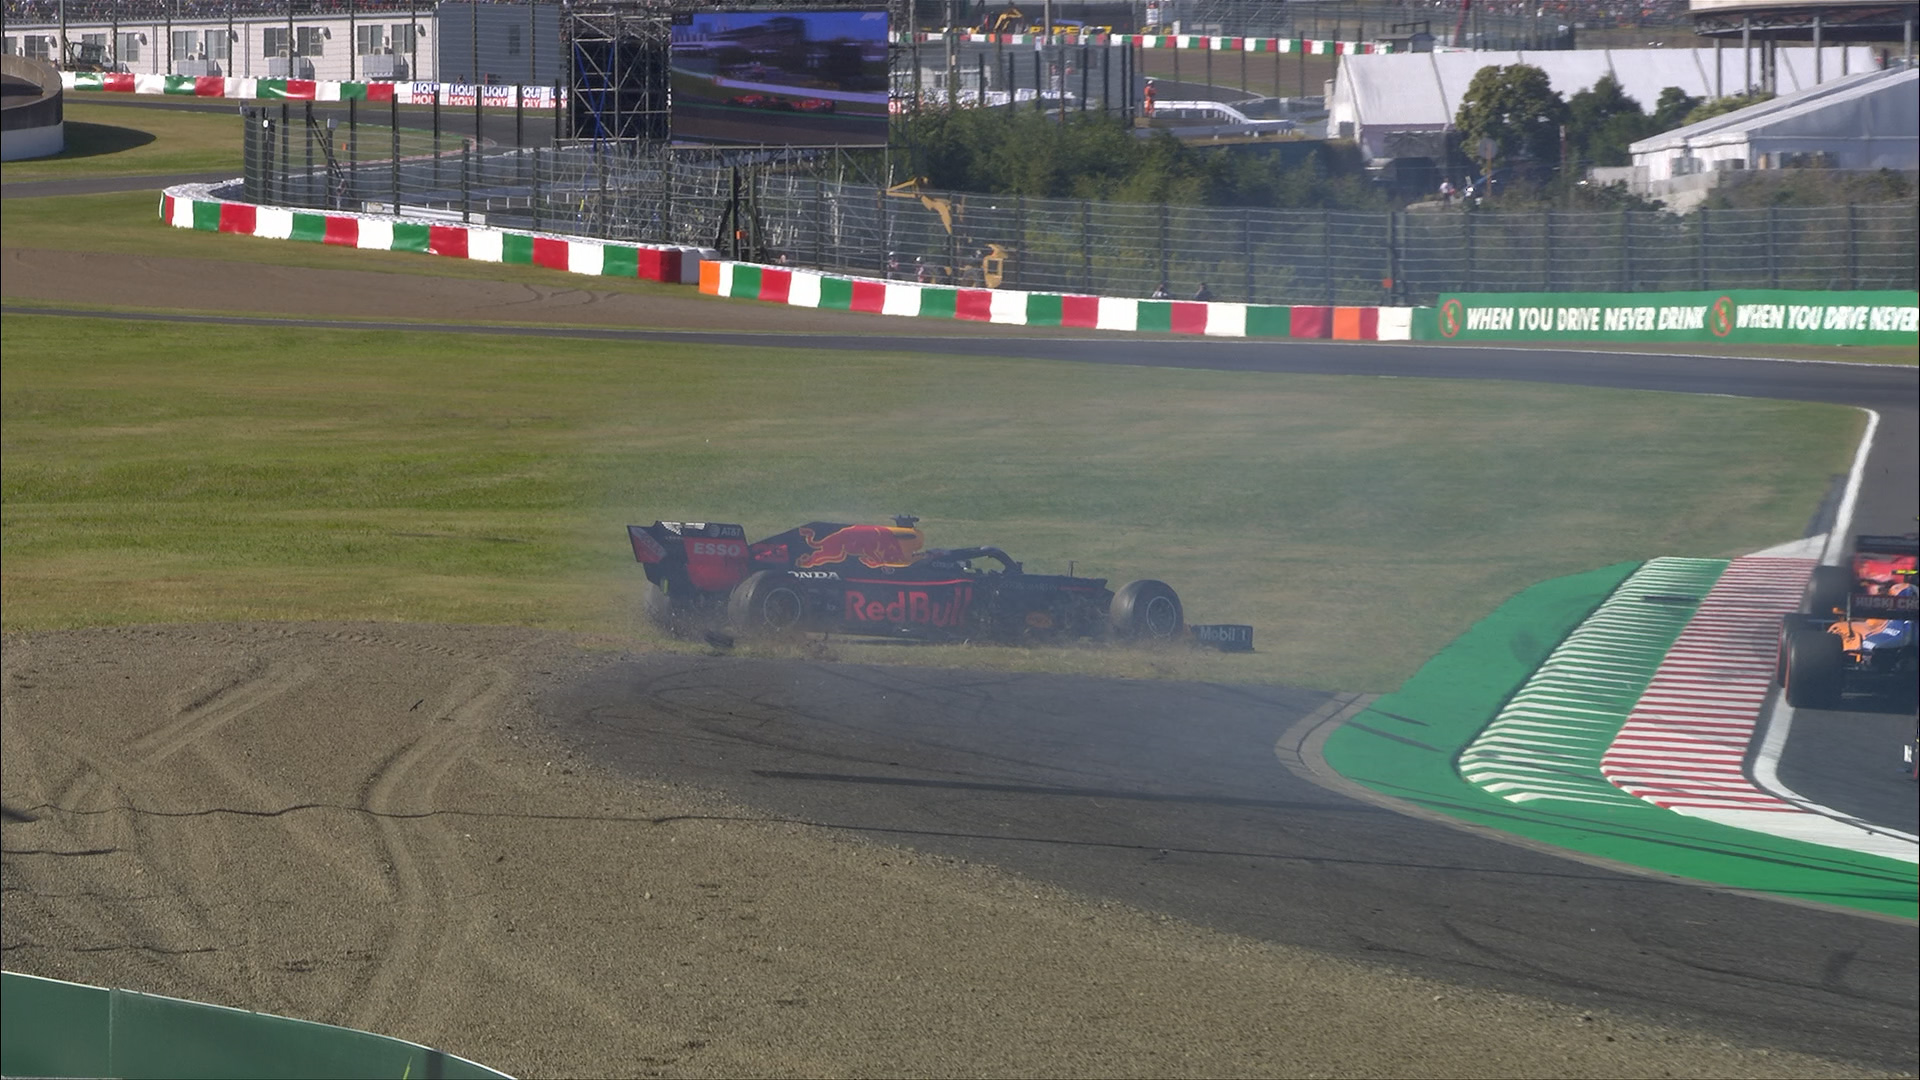 Japanese GP: Leclerc and Verstappen's controversial Lap 1 collision